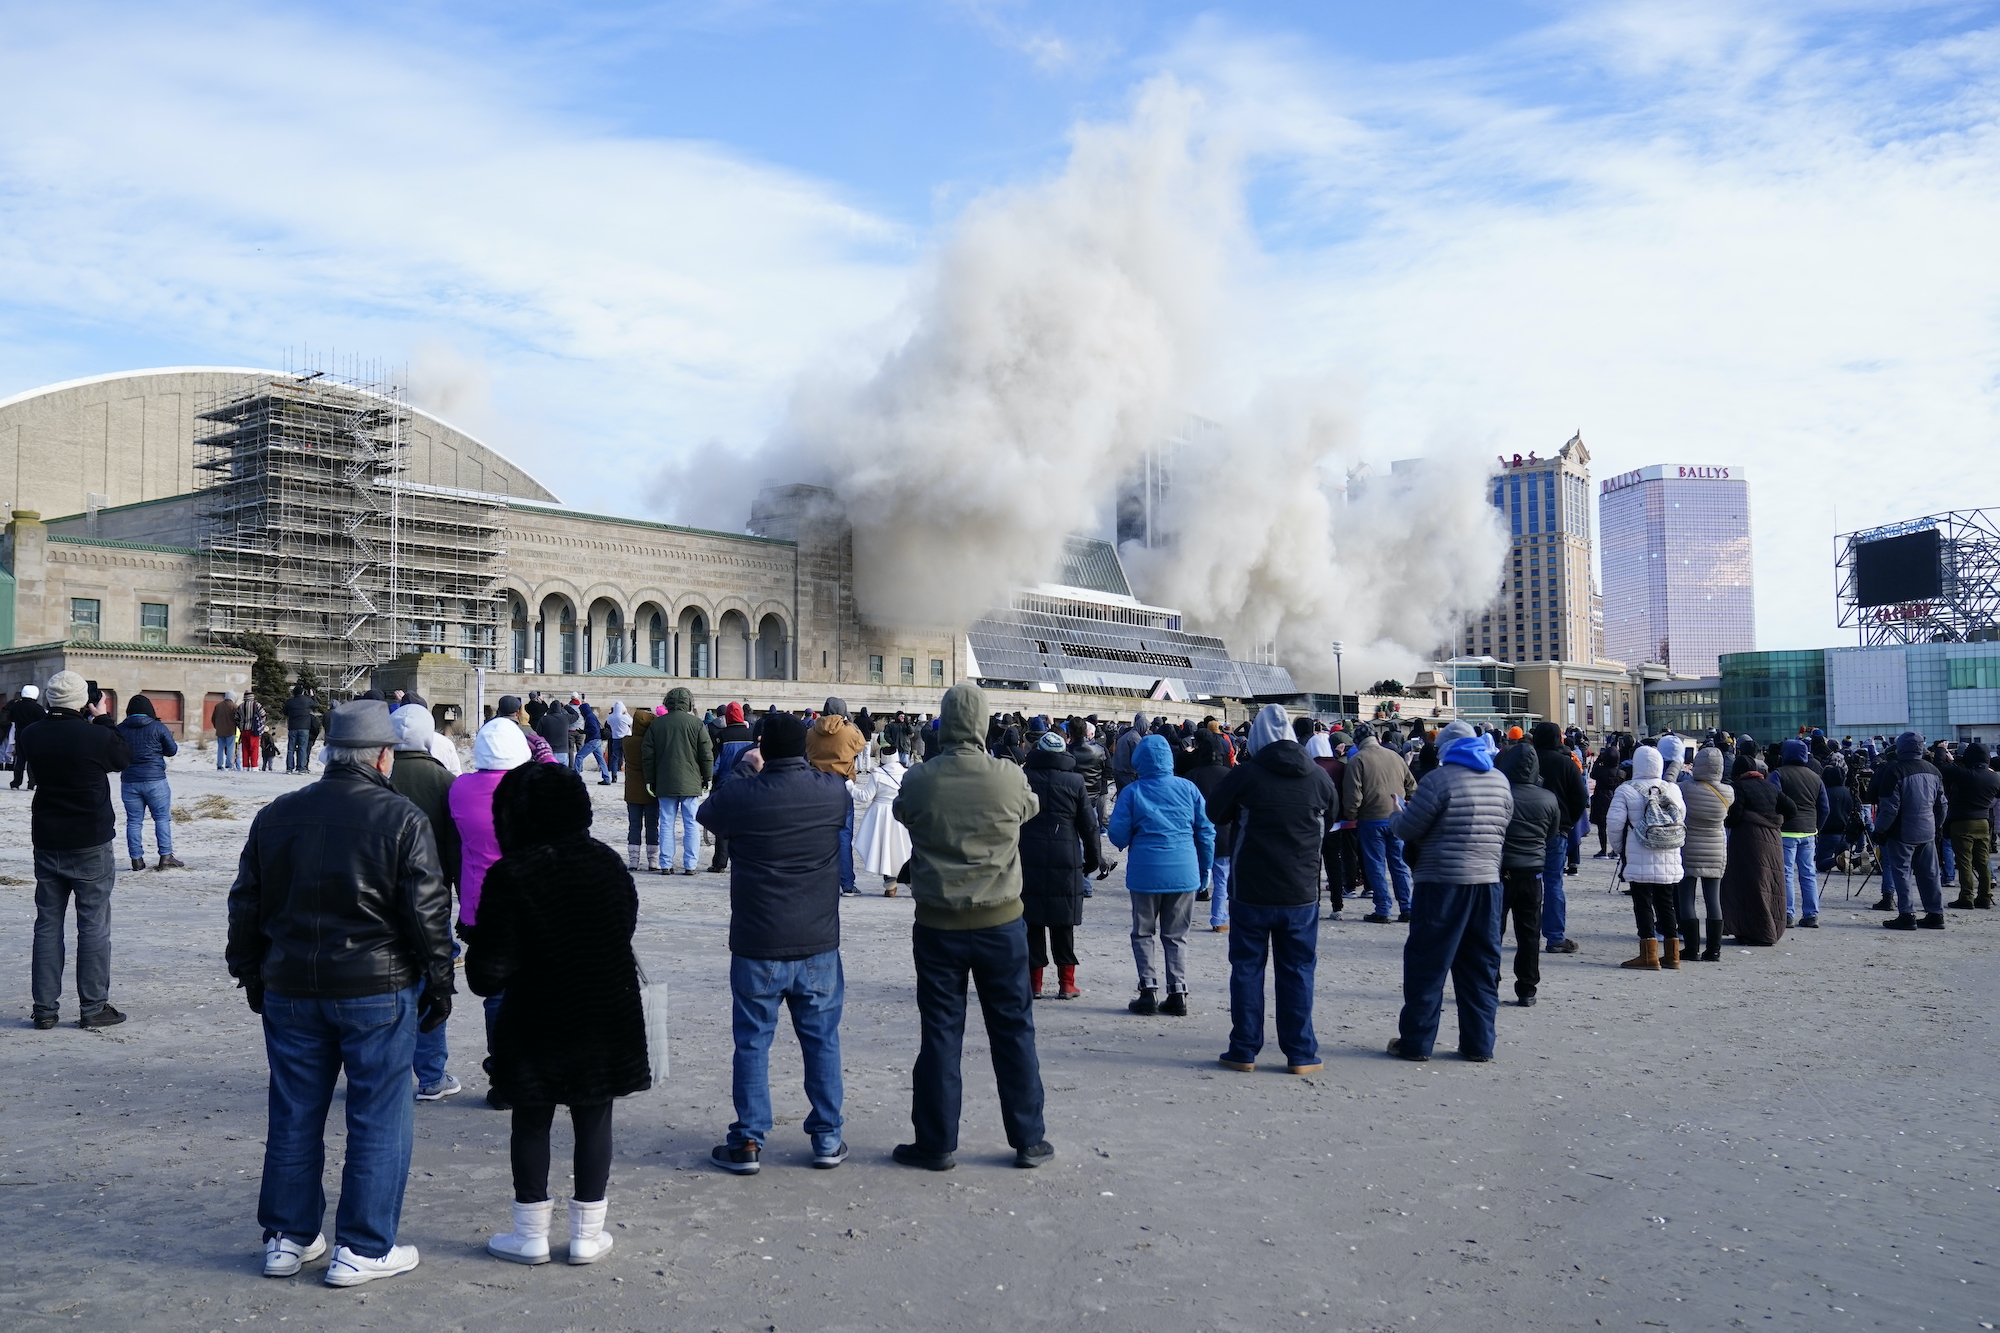 The former Trump Plaza casino is imploded as crowds look on